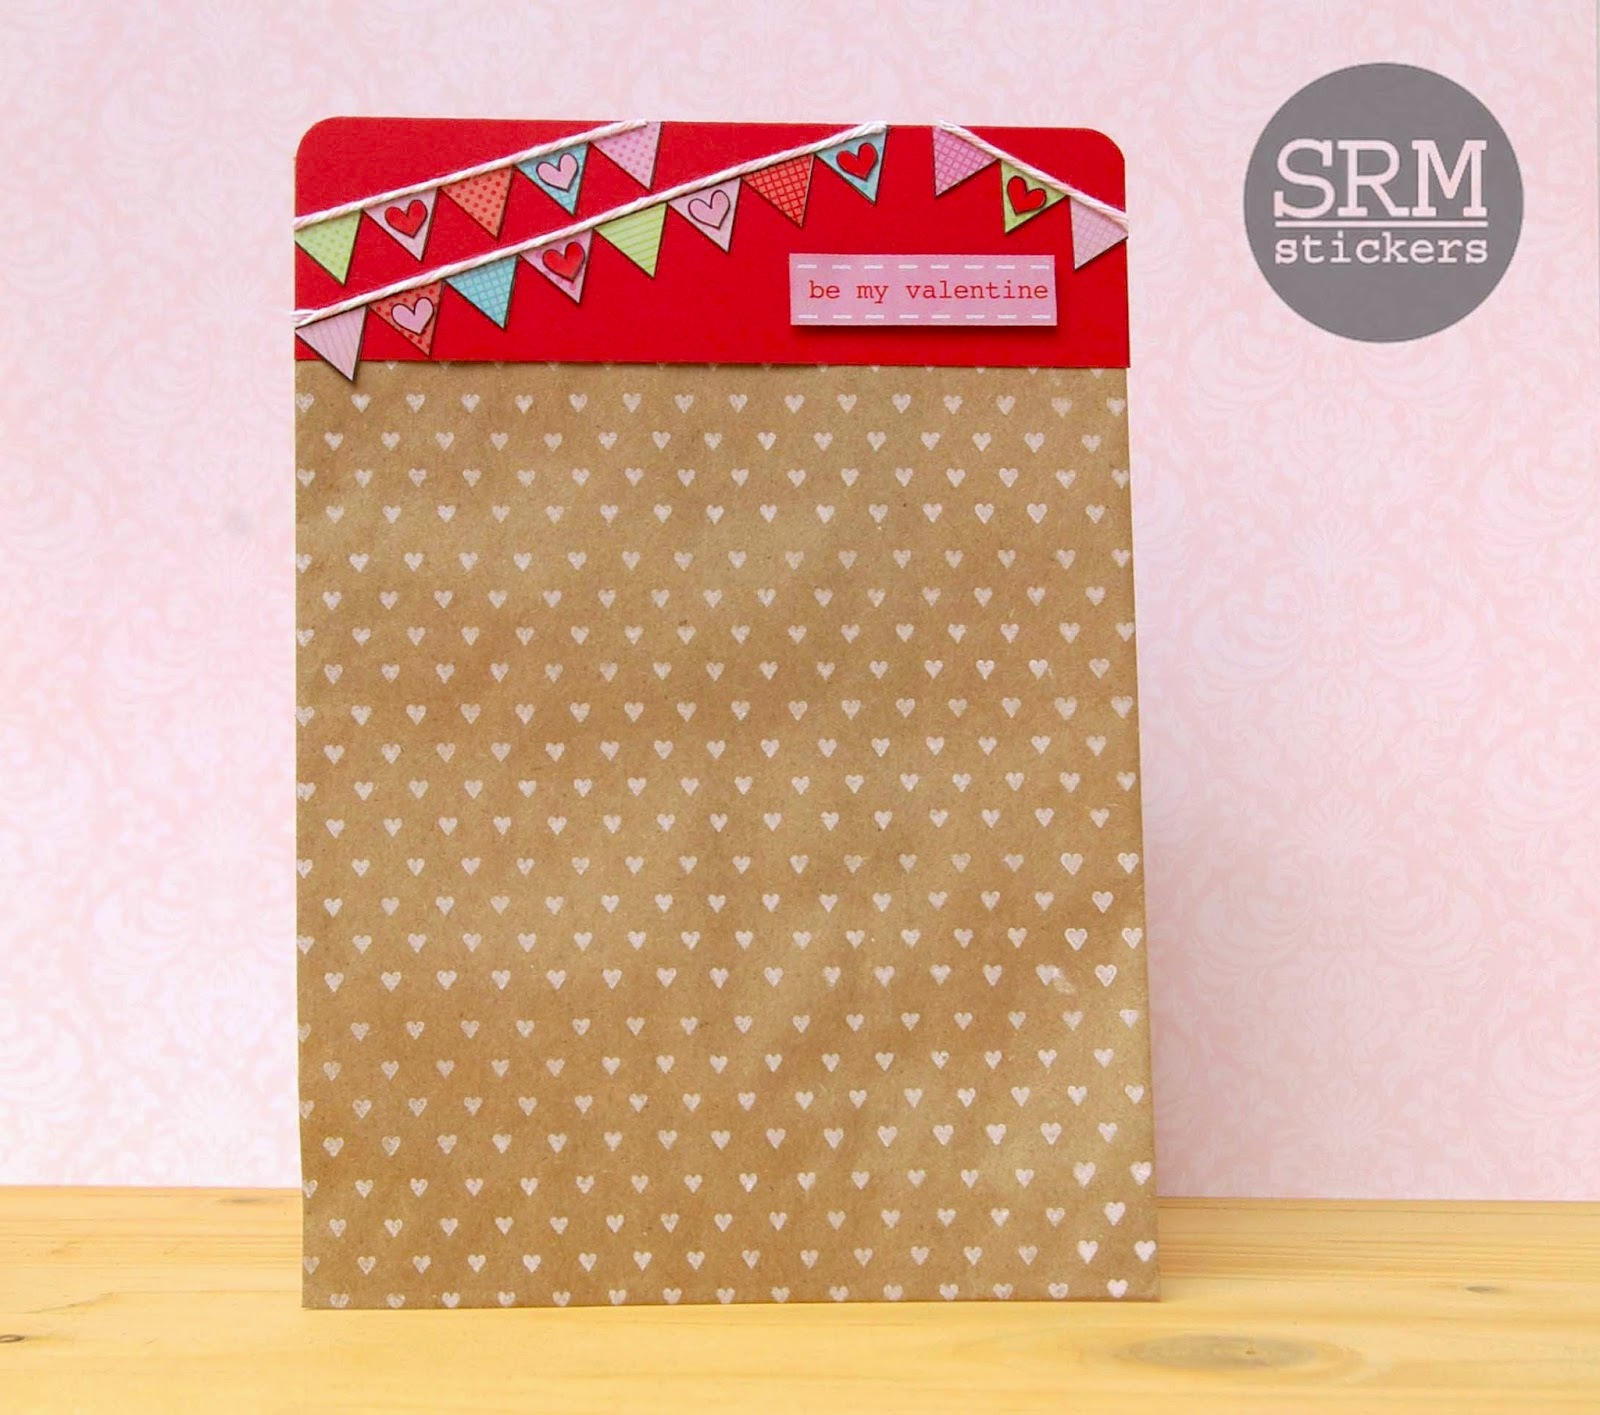 SRM Stickers Blog - Valentine Banners Treat Bag by Lorena - #kraft #bag #stamps #stickers #borders #twine #valentine #treat